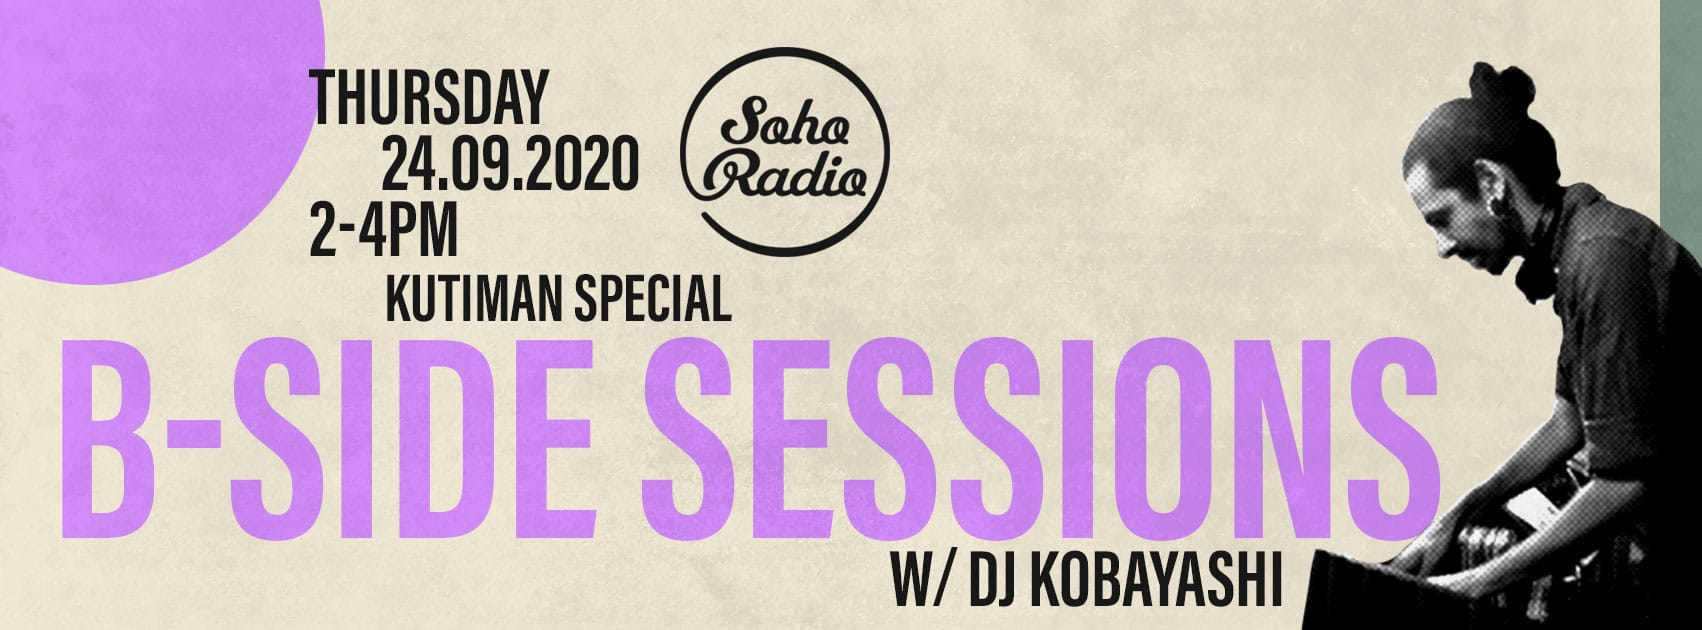 Kutiman Special on soho radio